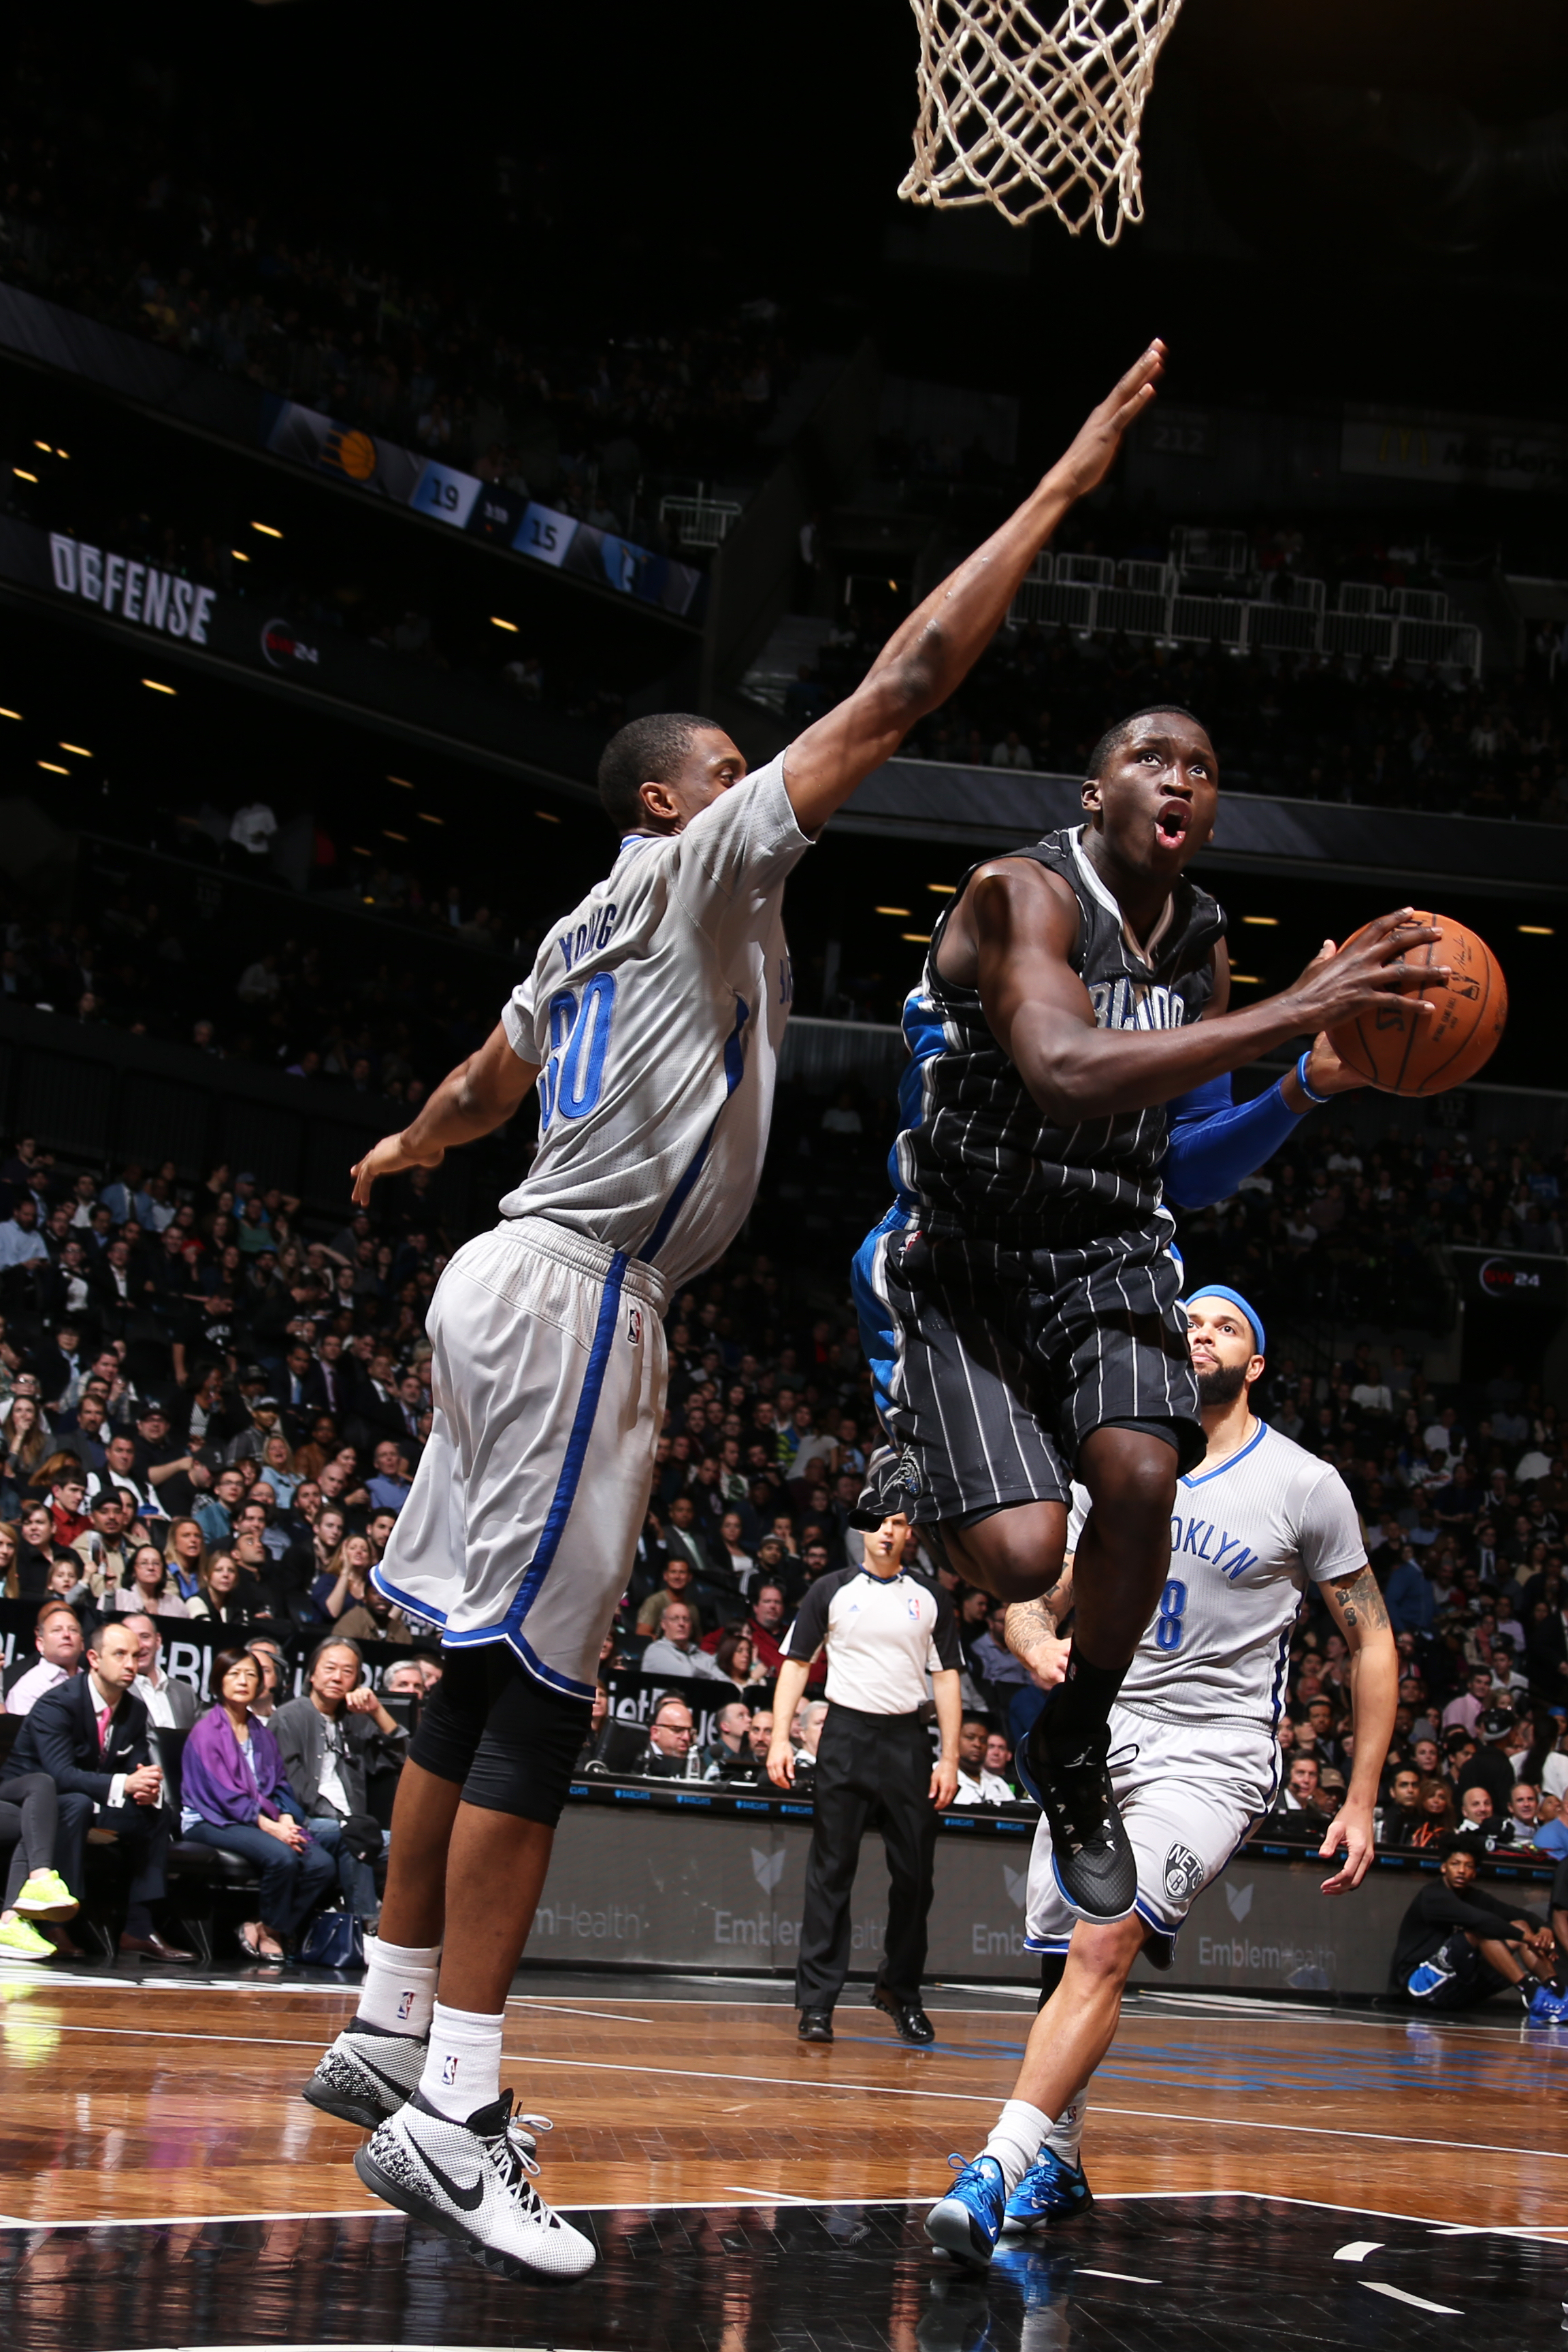 NEW YORK, NY - APRIL 15: Victor Oladipo #5 of the Orlando Magic goes up for a shot against the Brooklyn Nets on April 15, 2015 at the Barclays Center in the Brooklyn borough of New York City. (Photo by Nathaniel S. Butler/NBAE via Getty Images)